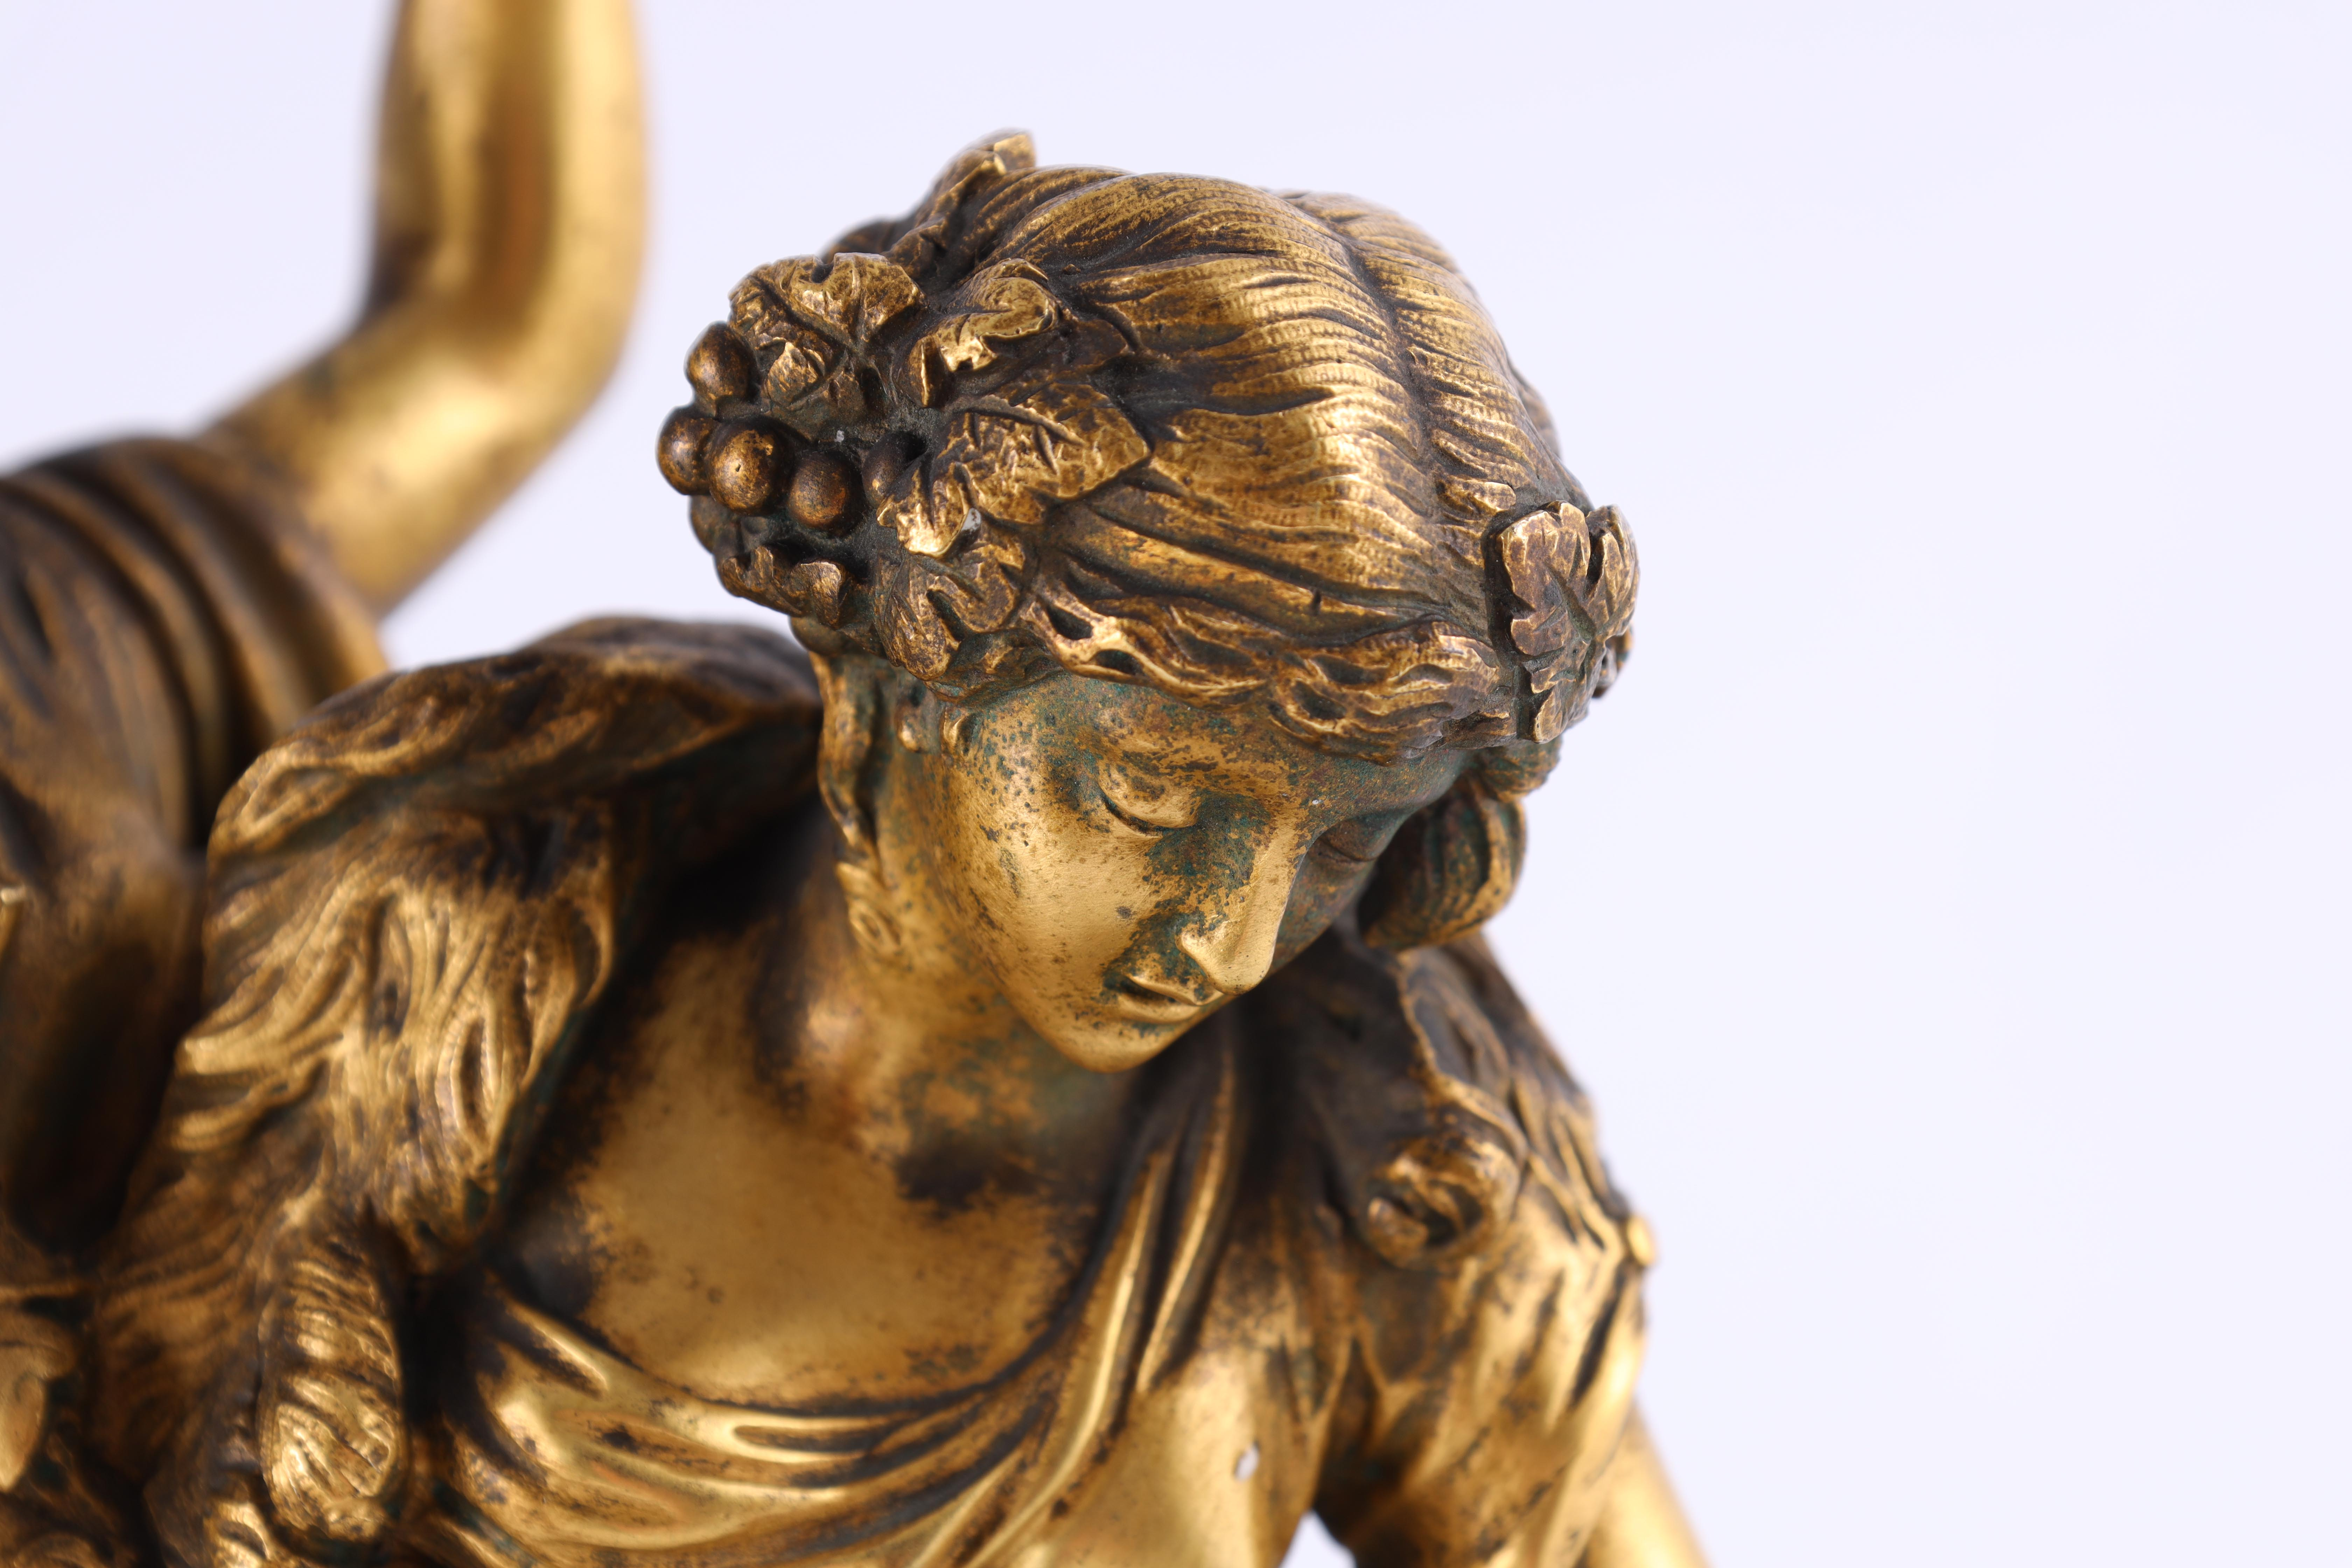 AFTER MICHAEL CLAUDE CLODION A LATE 19TH CENTURY FRENCH GILT BRONZE SCULPTURE titled 'Bacchanalia' - Image 8 of 10